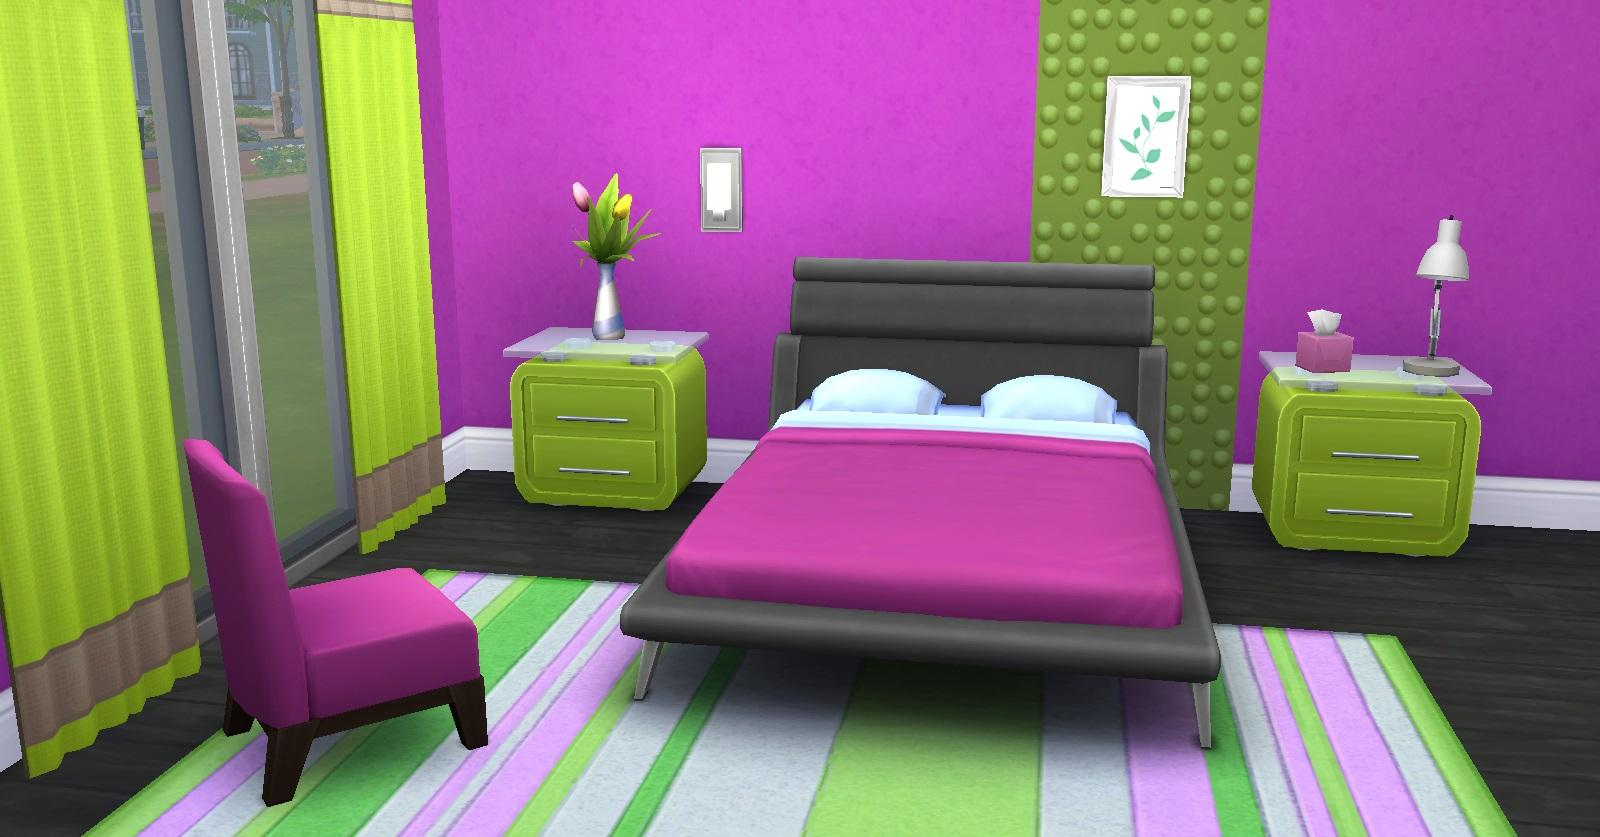 et si on mariait les couleurs le gris fin 16 09 page 7 les sims. Black Bedroom Furniture Sets. Home Design Ideas